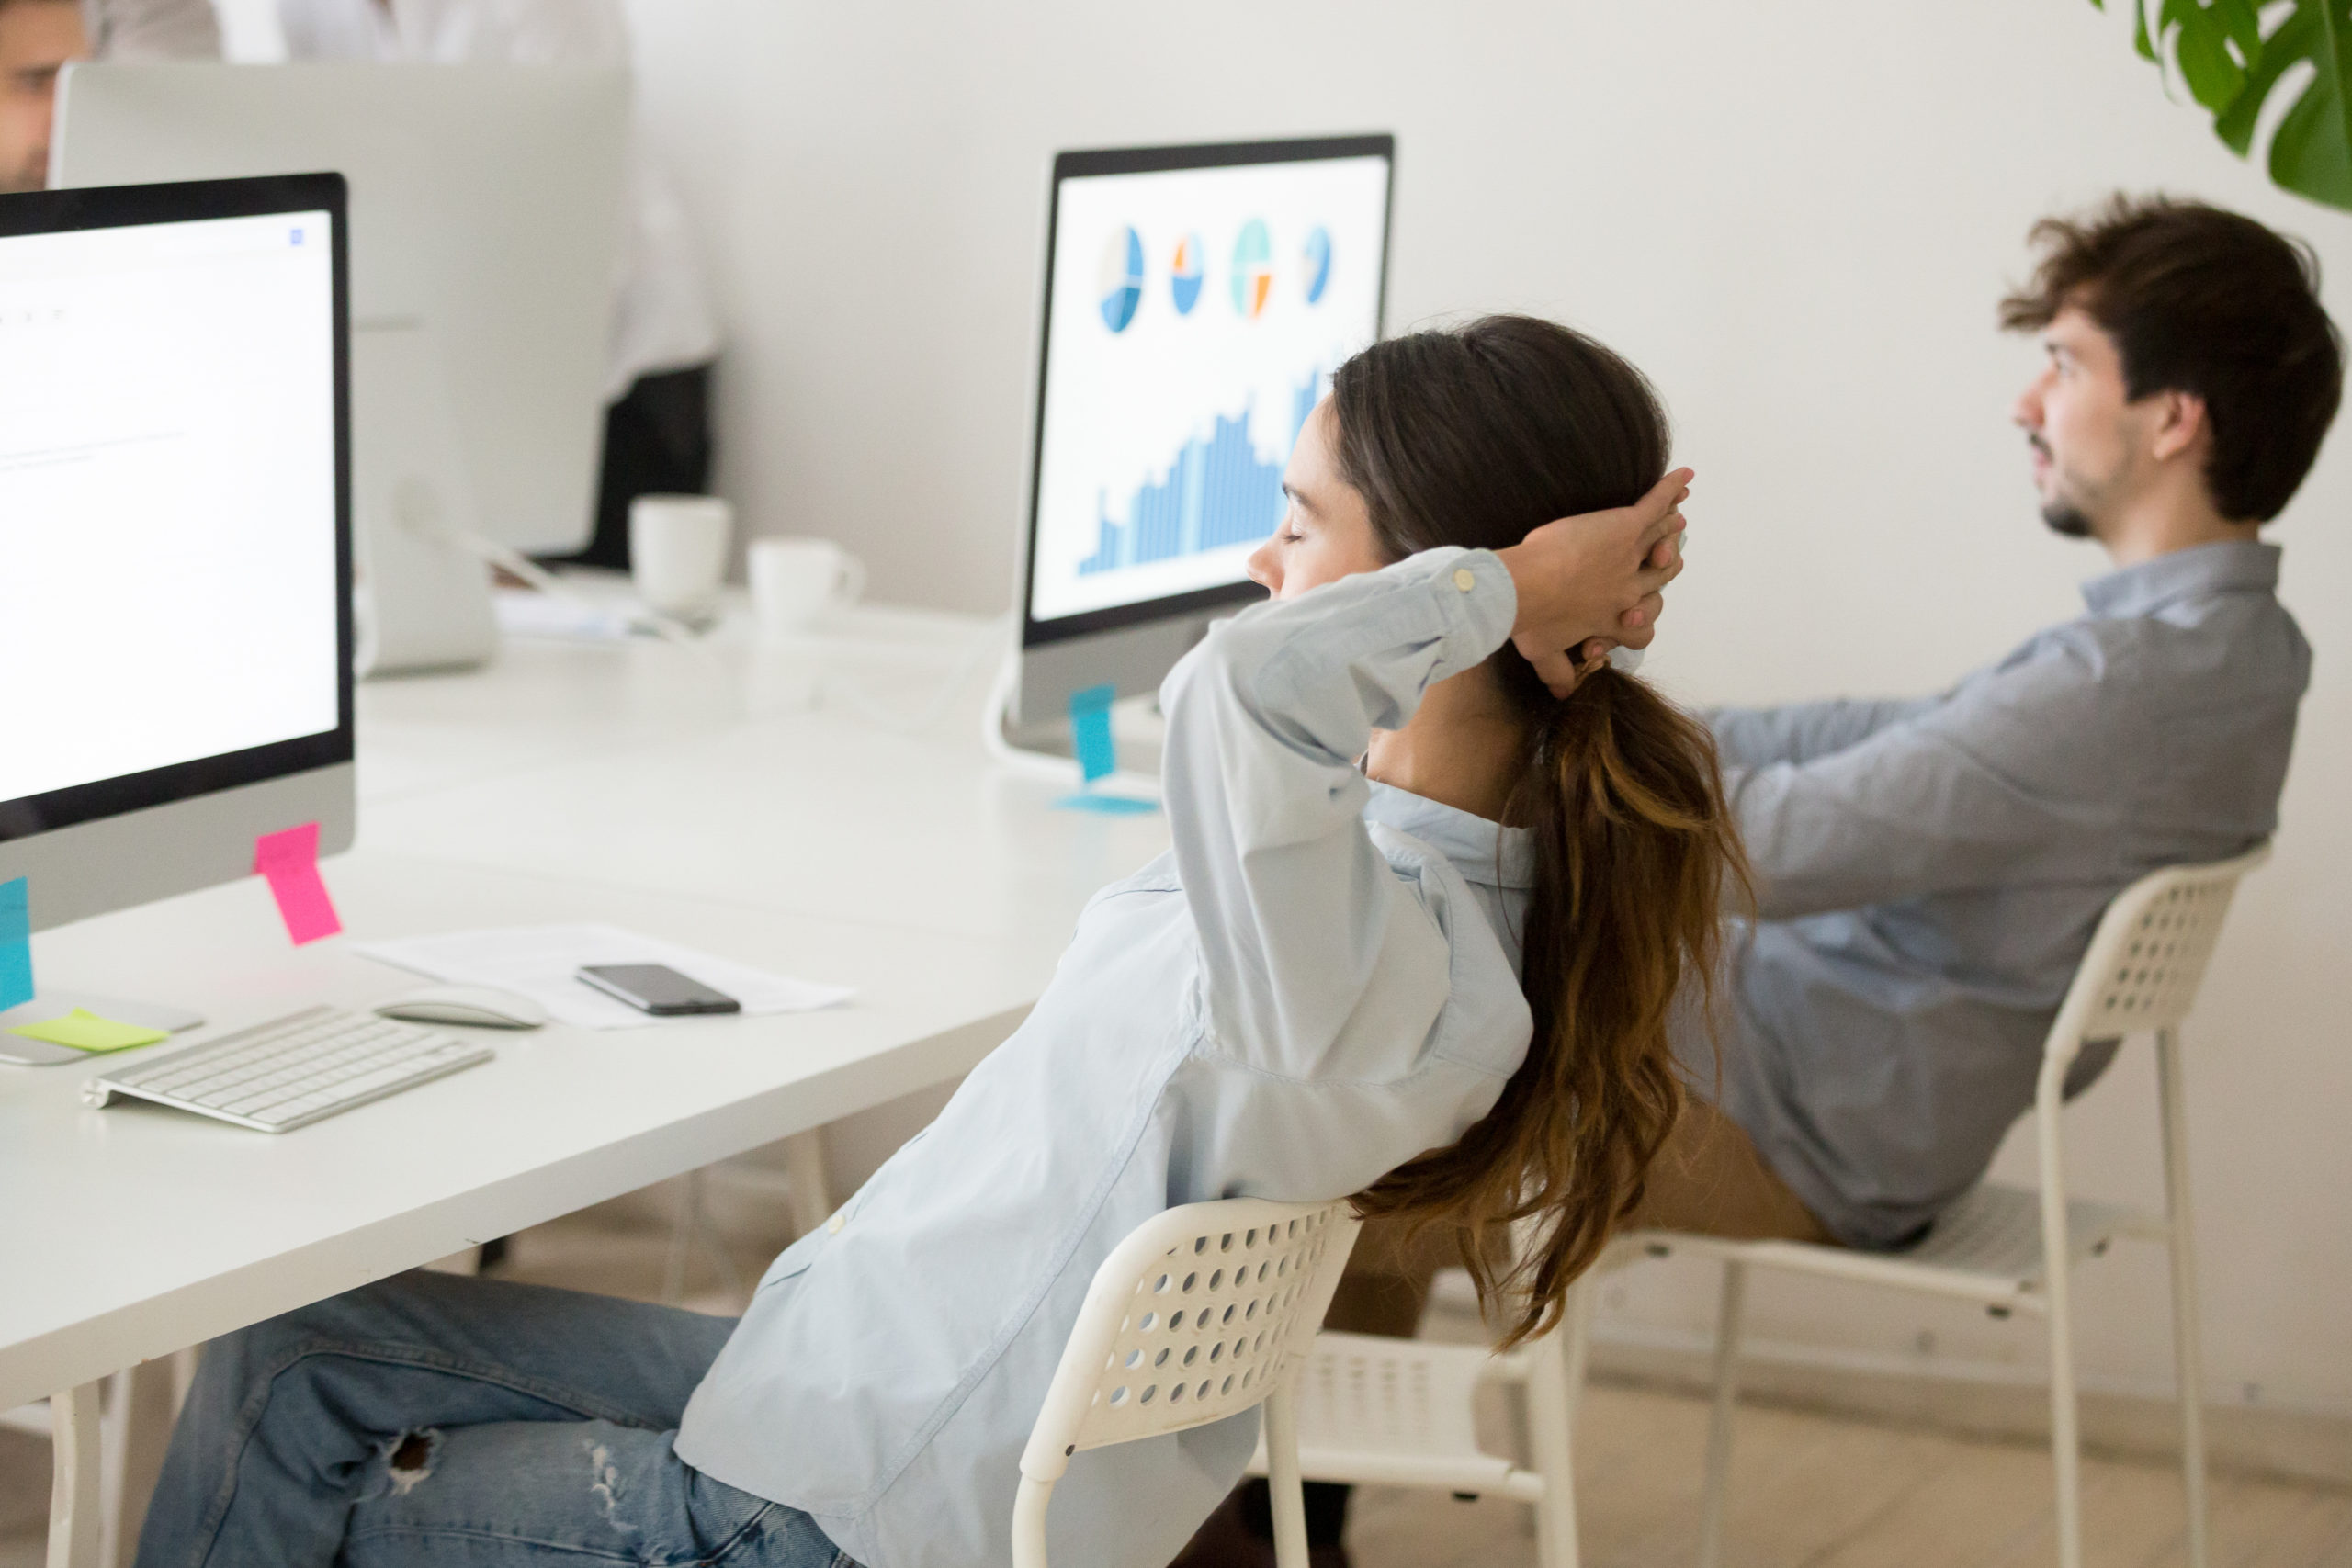 Female employee relaxing from computer work holding hands behind head. Forgetting about workplace stress